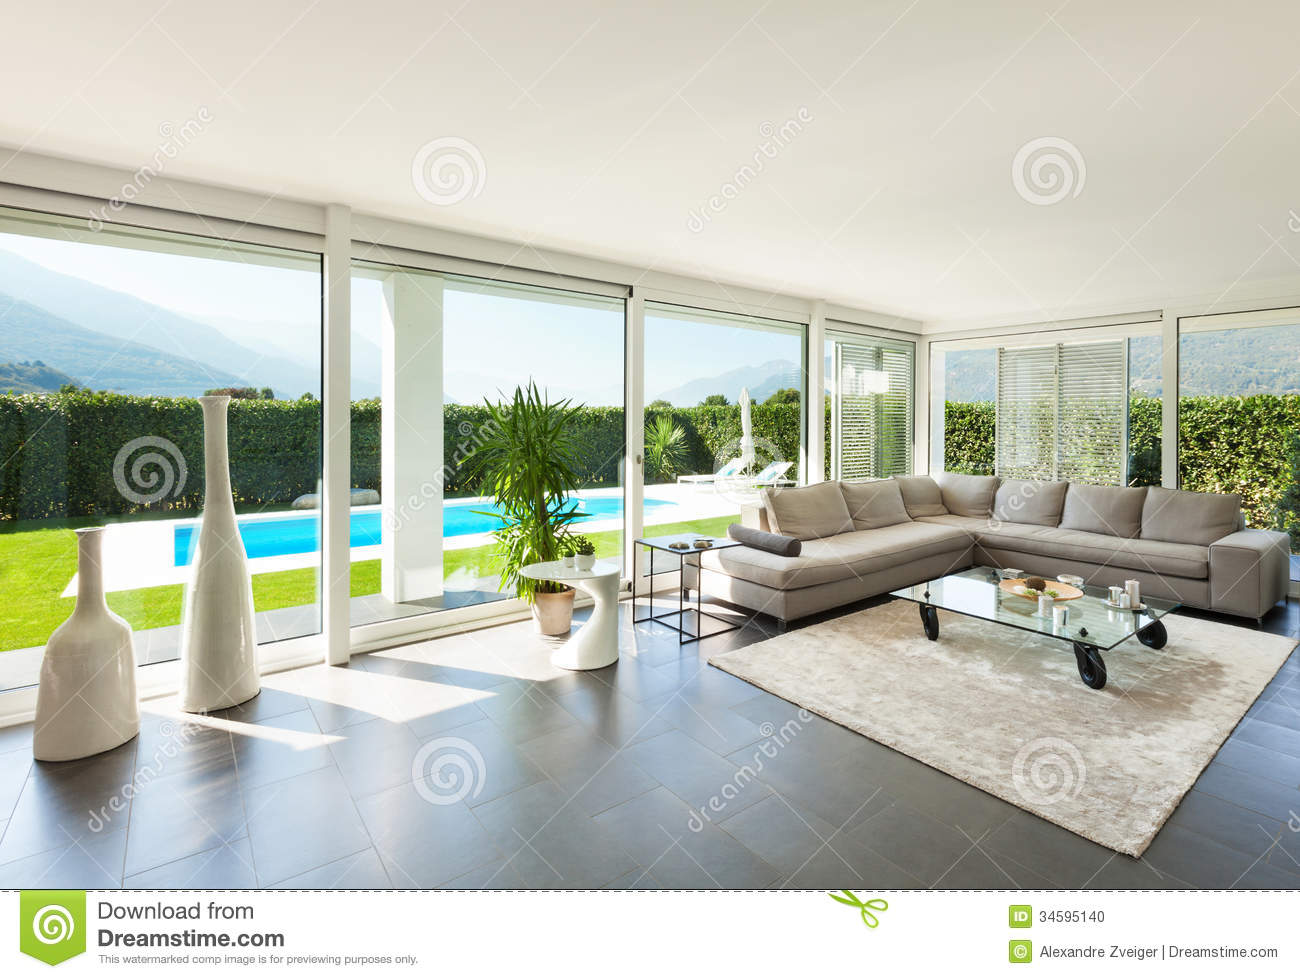 Interior, Beautiful Living Room Stock Photo - Image of design, sofa ...